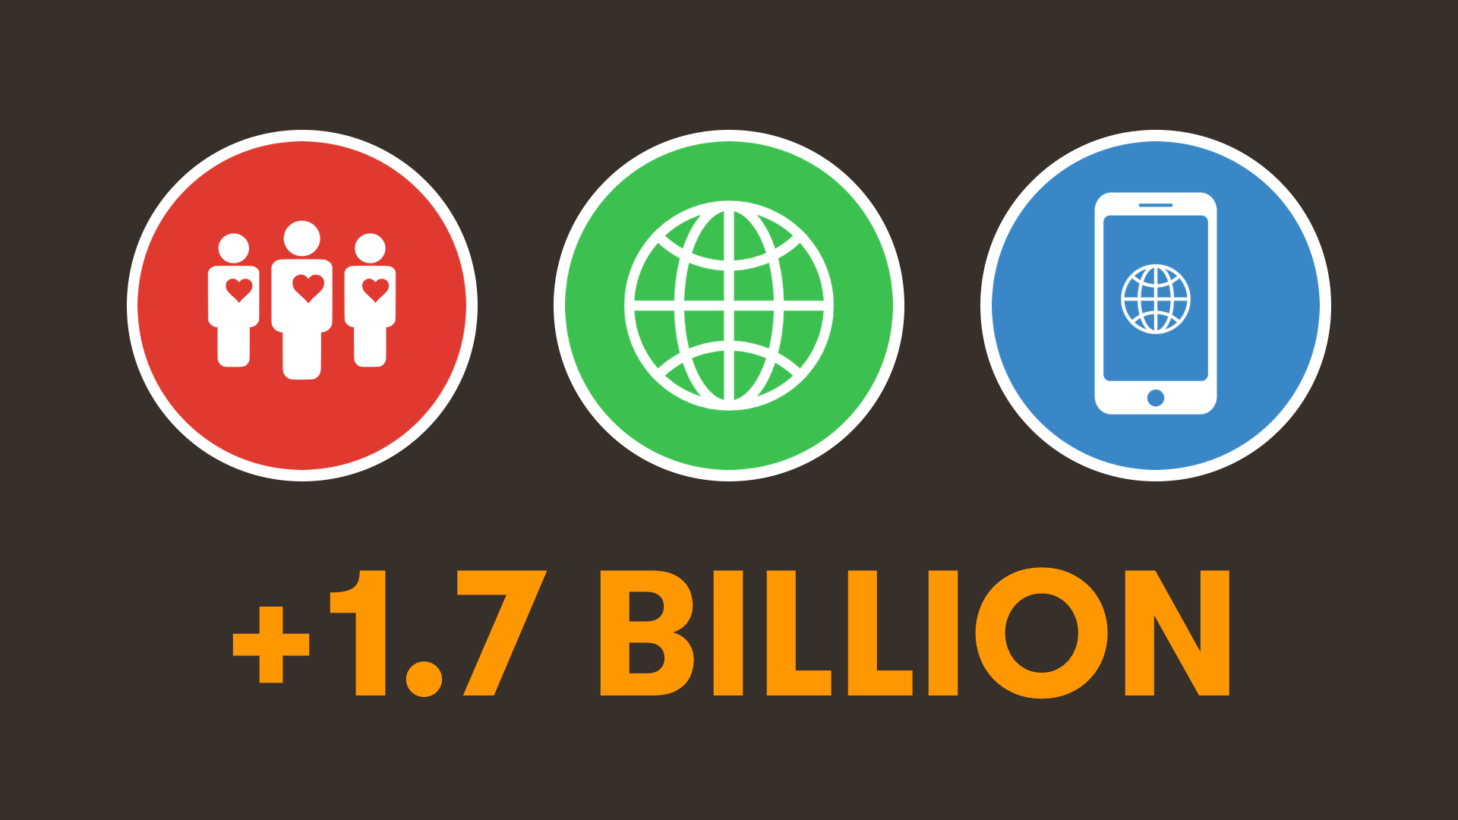 internet growth Internet connectivity enabling growth in global internet traffic and higher performance of mobile devices as the internet continues to expand, mobile data traffic is expected to double every year through 2014, while internet traffic will expand 46% annually.